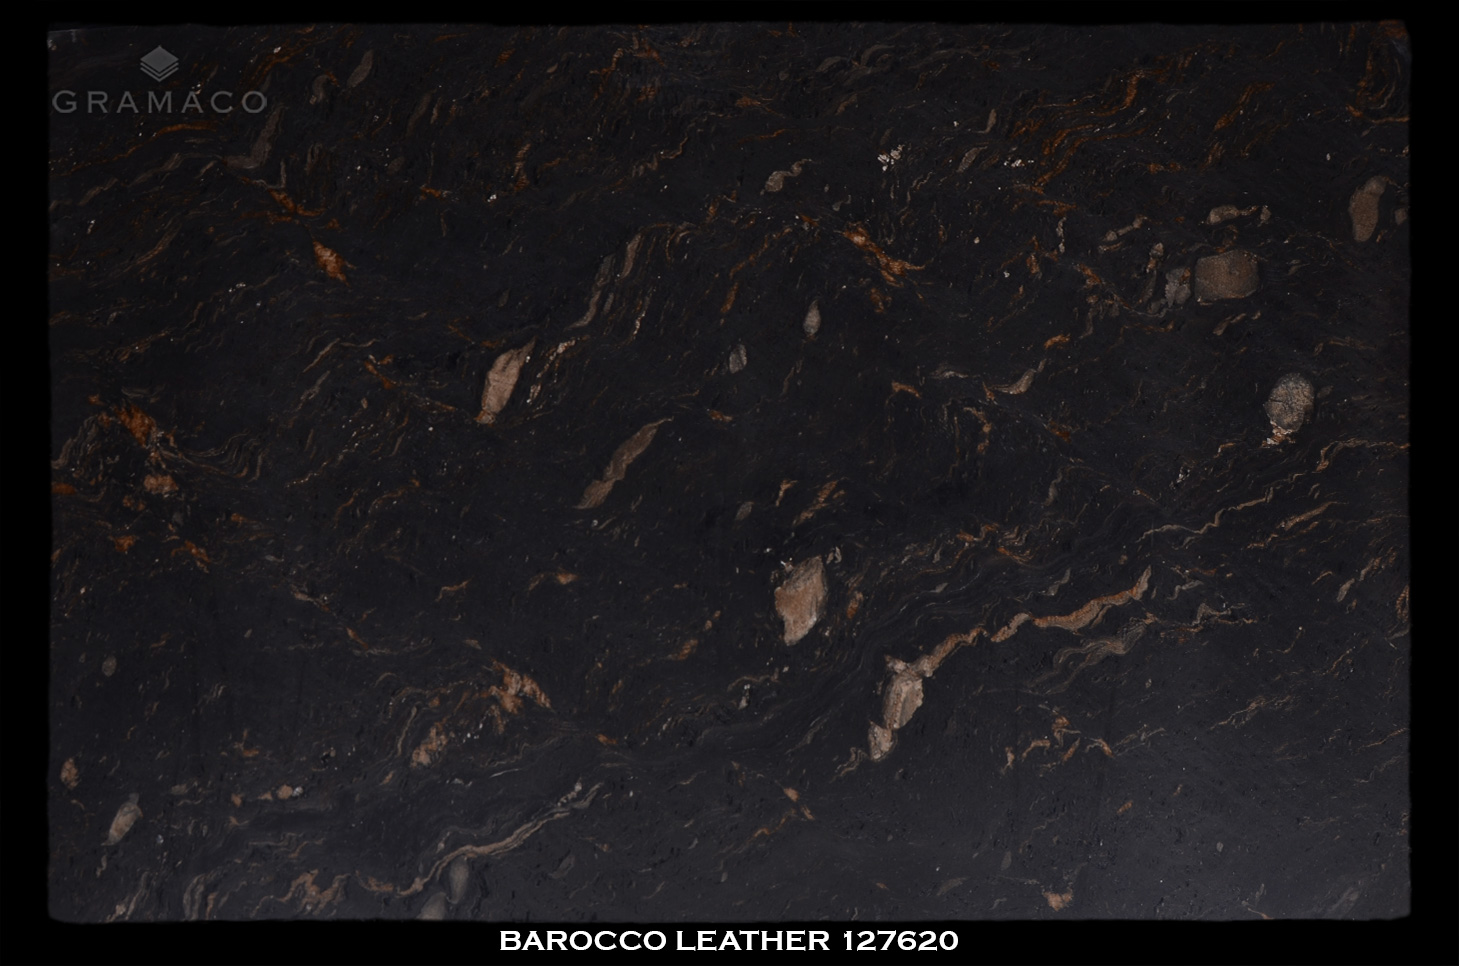 barocco_leather127620-slab